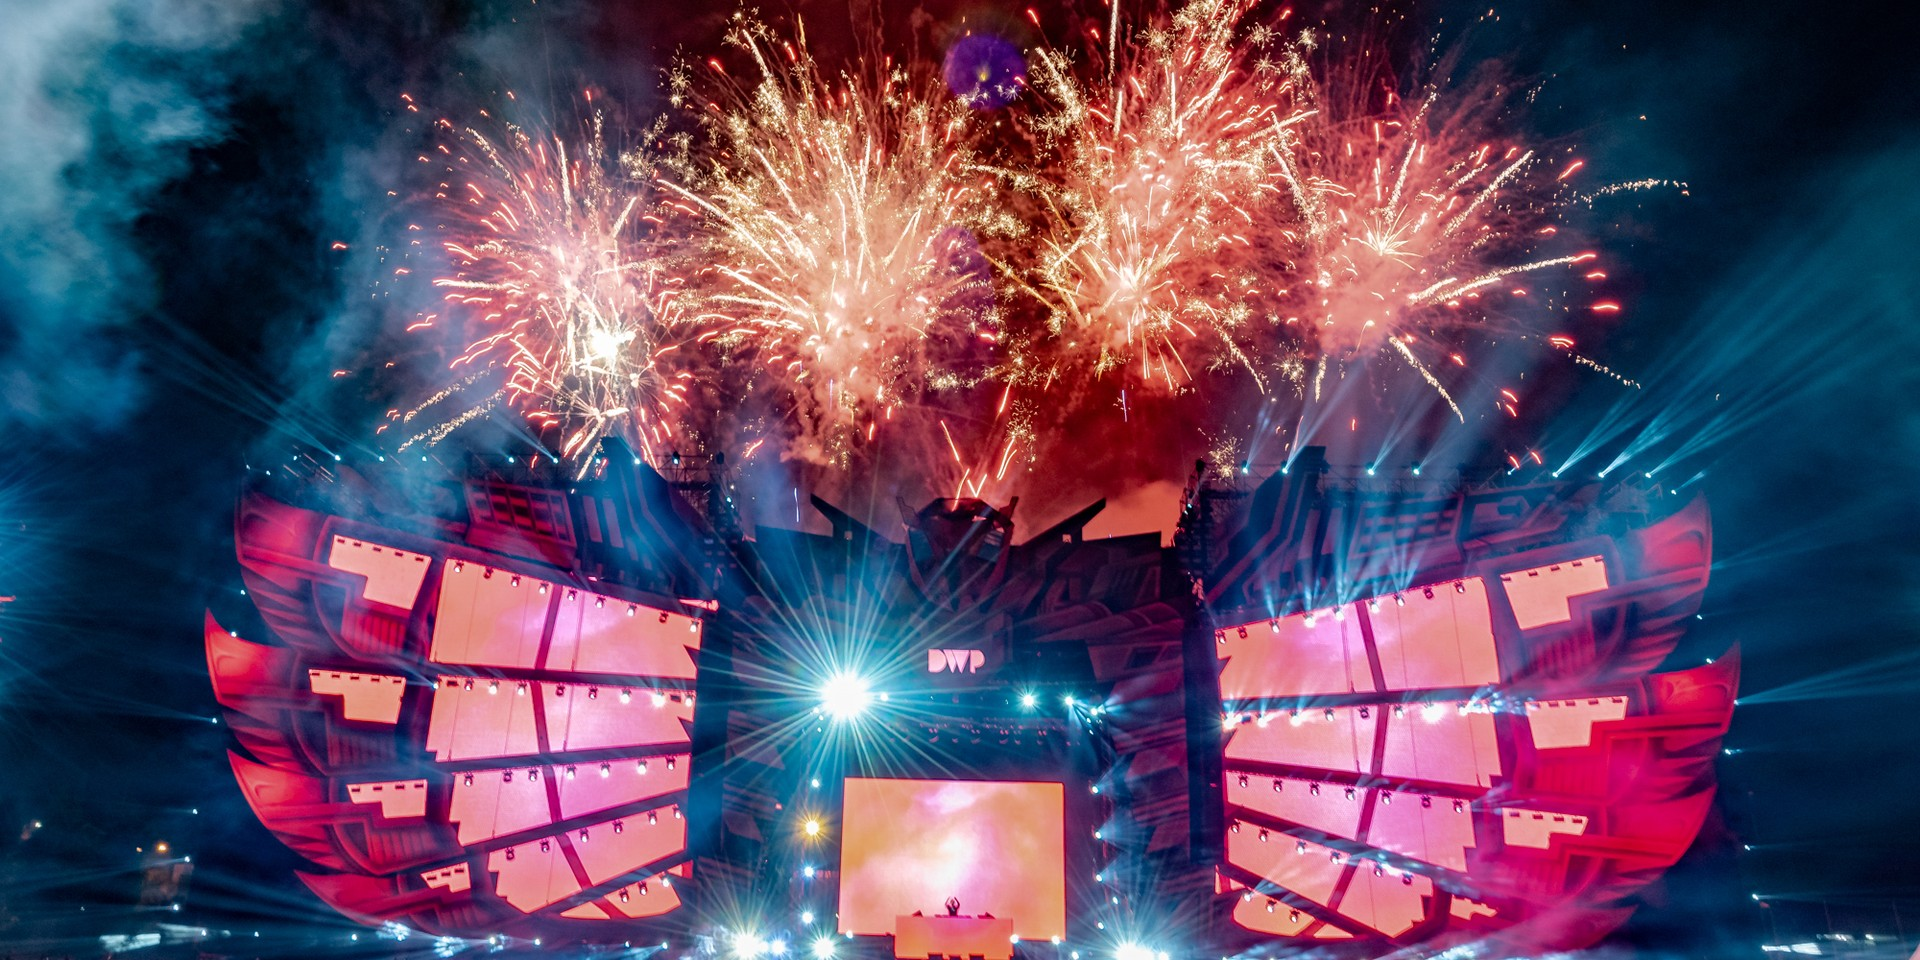 DWP closes out the decade as the biggest dance music festival in Asia – festival report